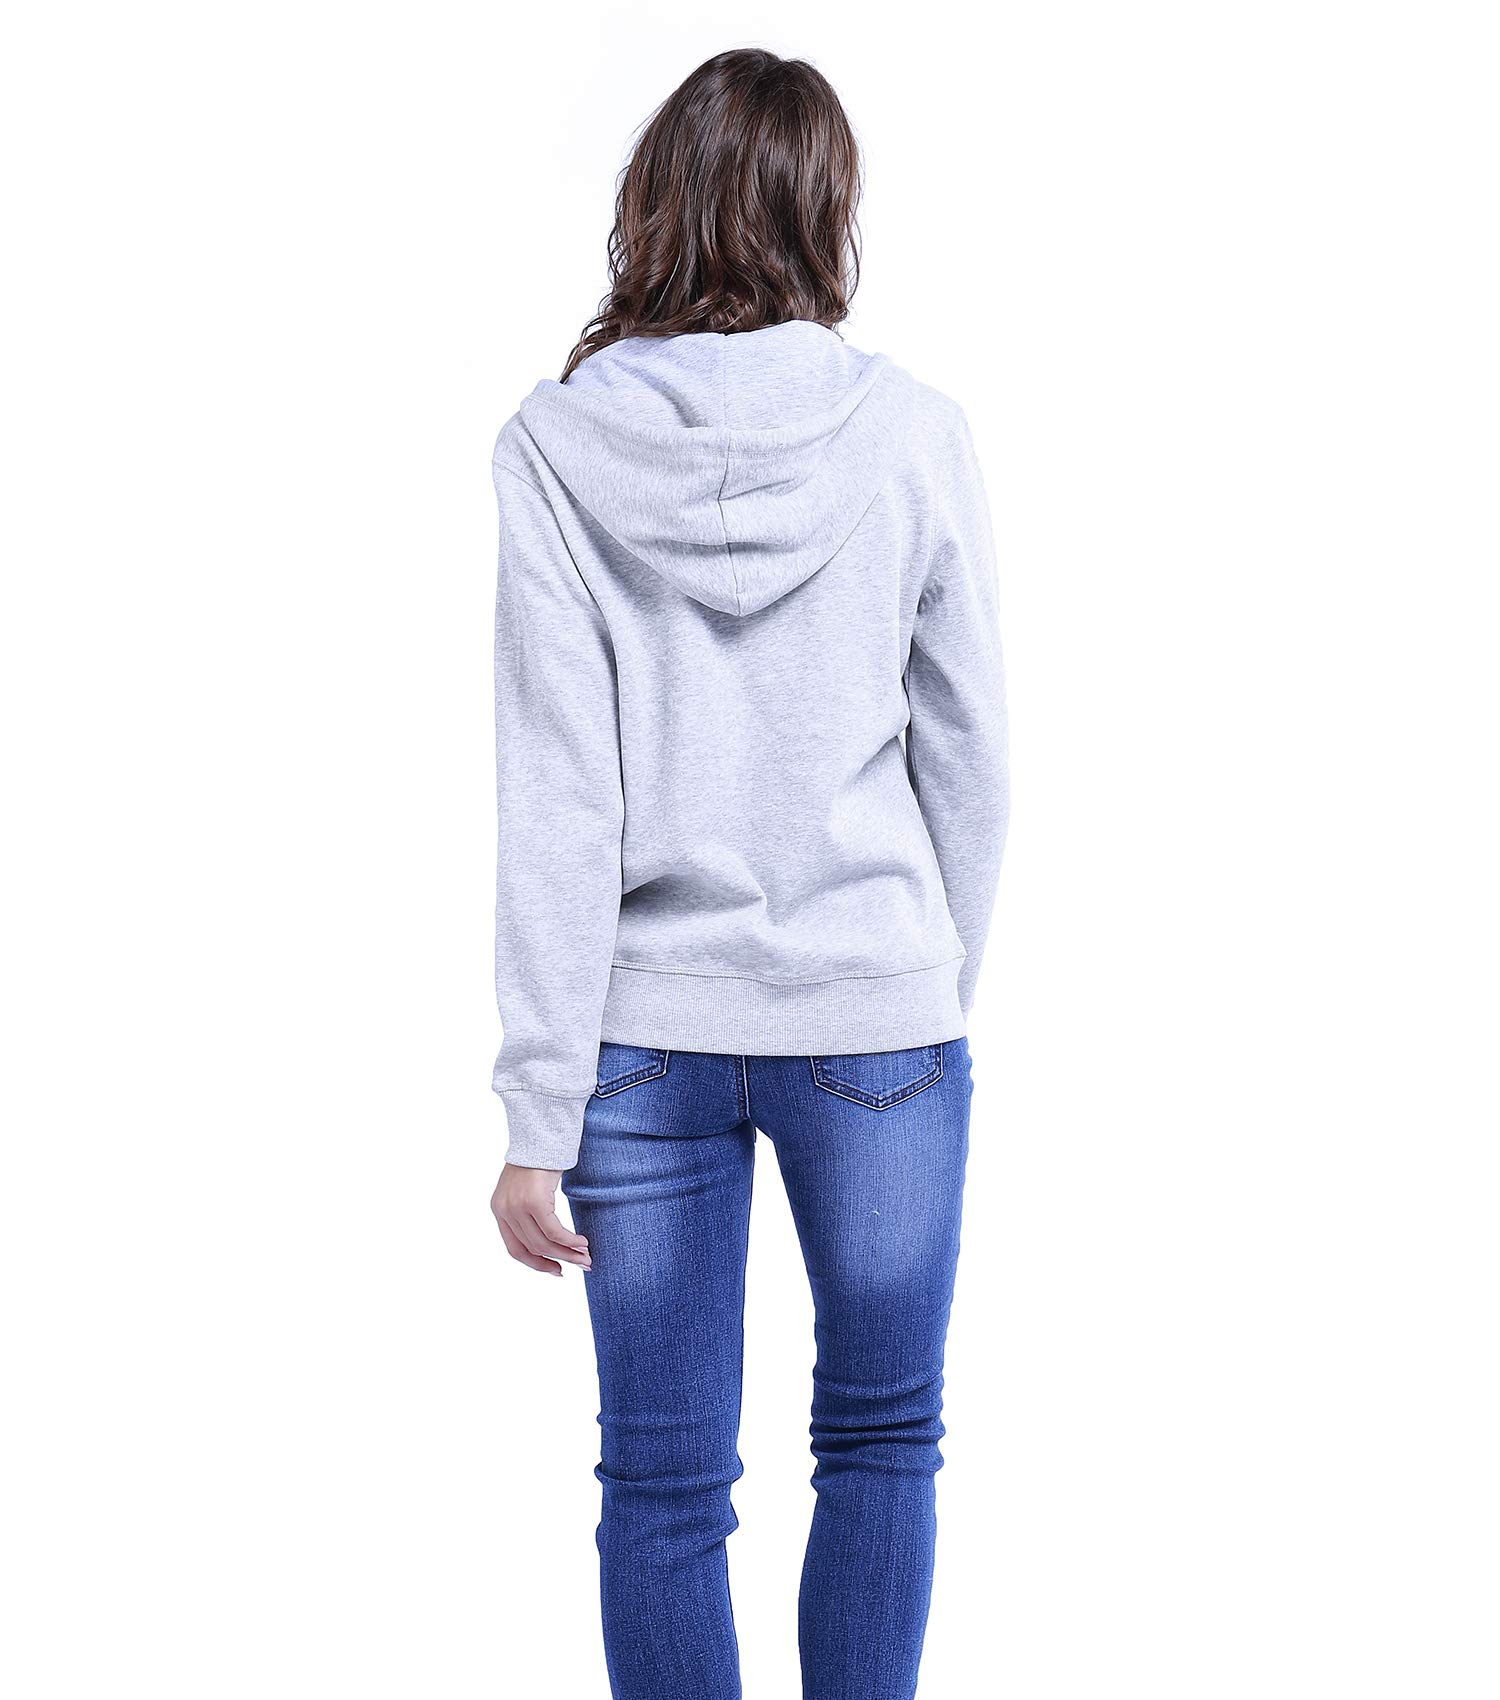 TWO BLOCKS OFF Womens Pull Over Hoodie Long Sleeve with Pockets Casual Pullover Sweatshirt Tops Light Grey Size S by TWO BLOCKS OFF (Image #4)